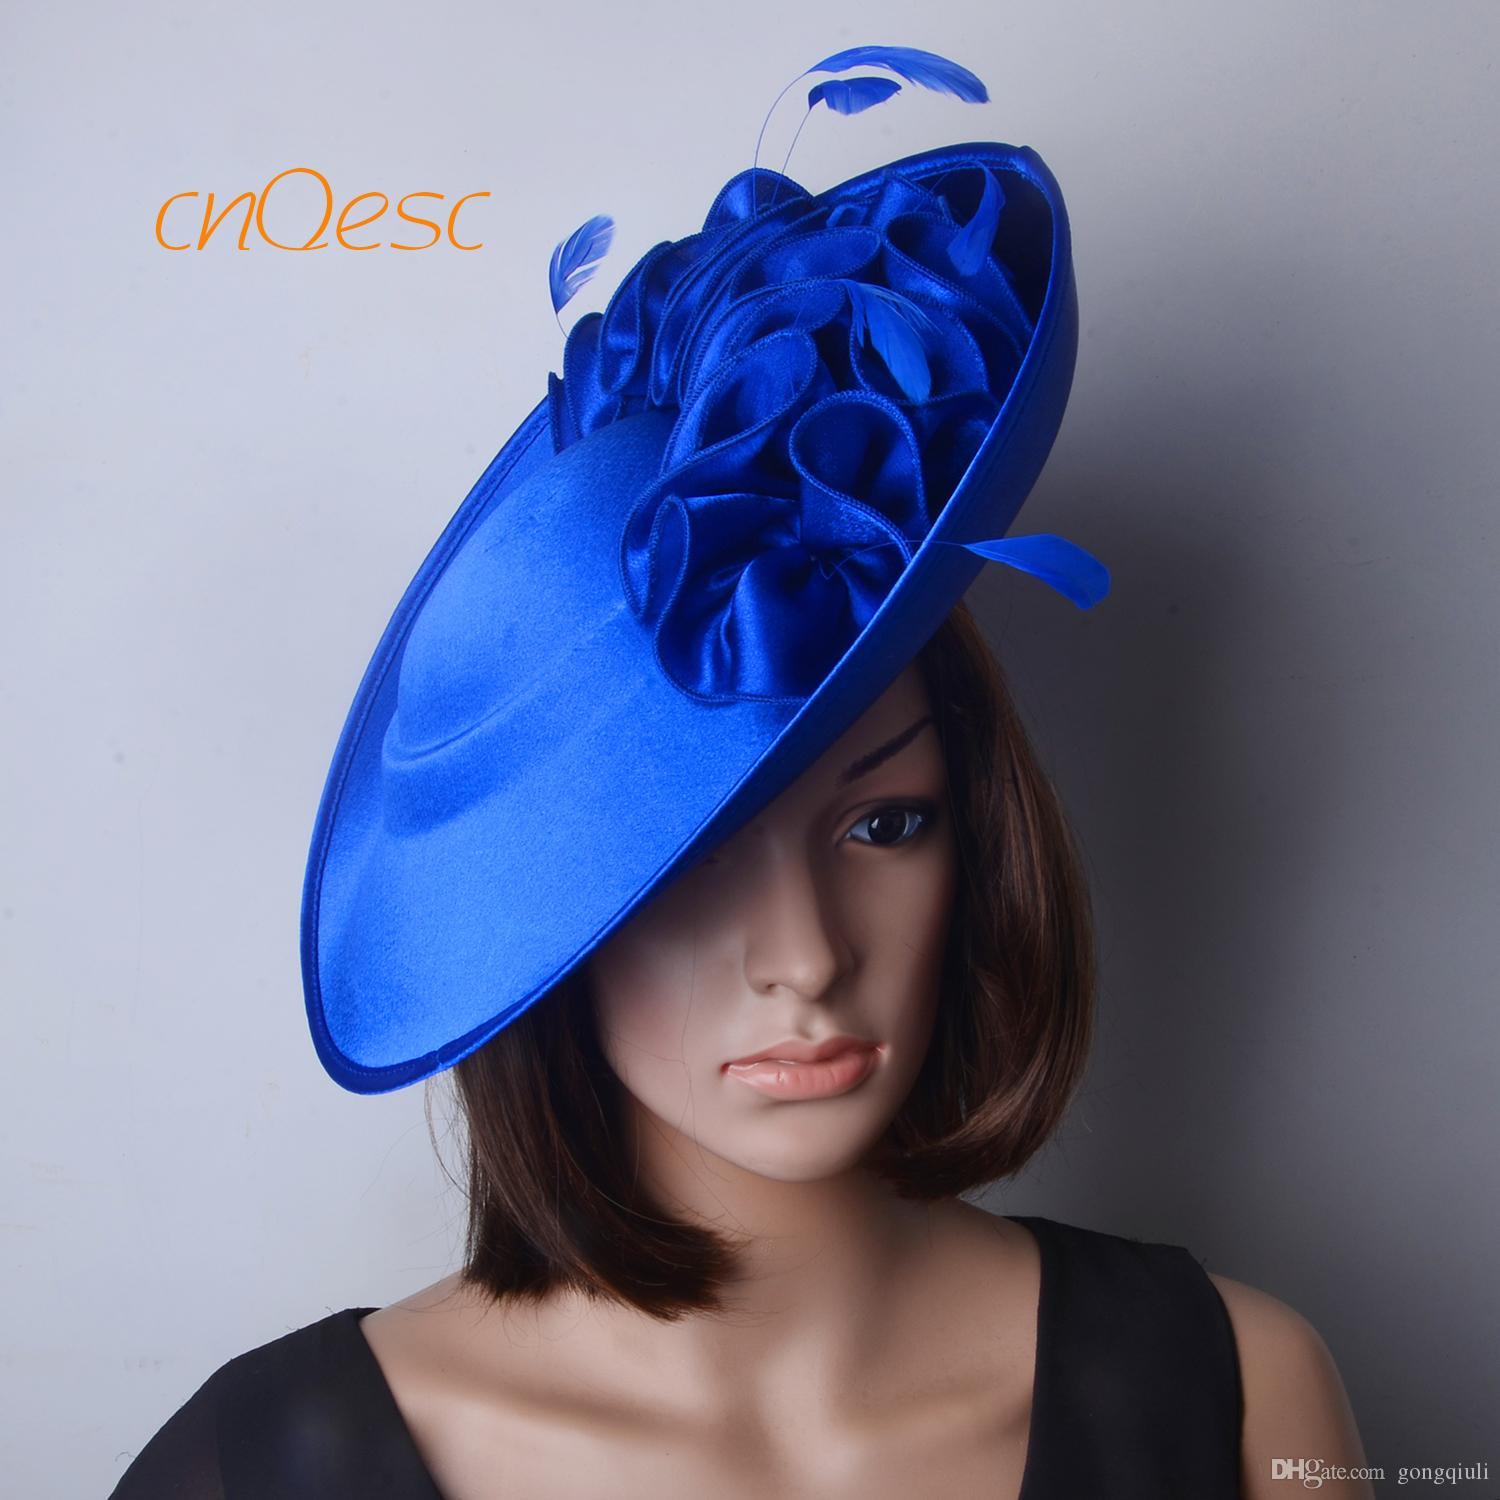 9684c3ab03a Royal Blue Large Saucer Satin Fascinator Formal Hat For Races Wedding  Mother S Day Derby Bridal Cowgirl Hat Bridal Pillbox Hat From Gongqiuli